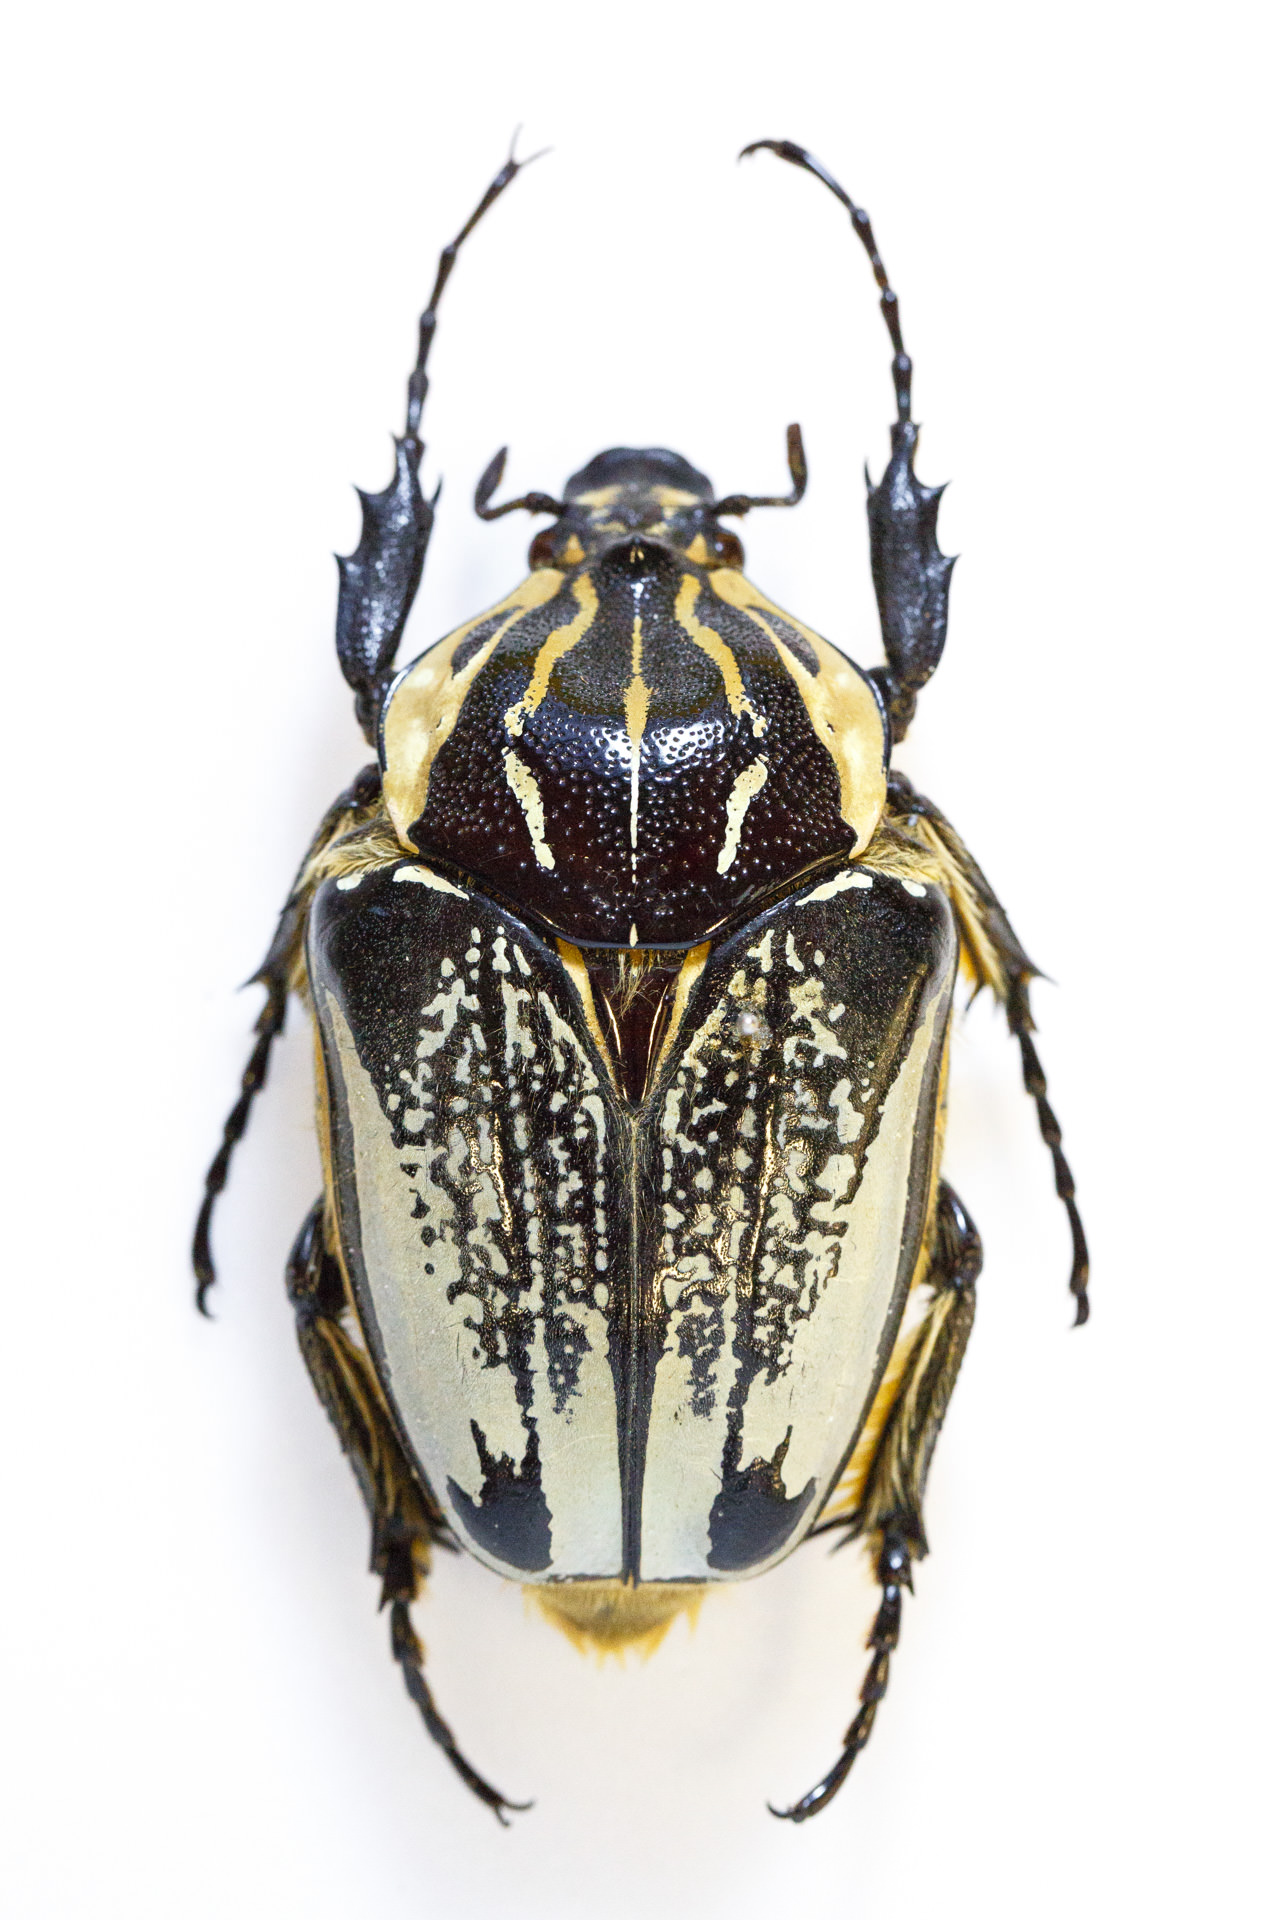 Goliath beetle.